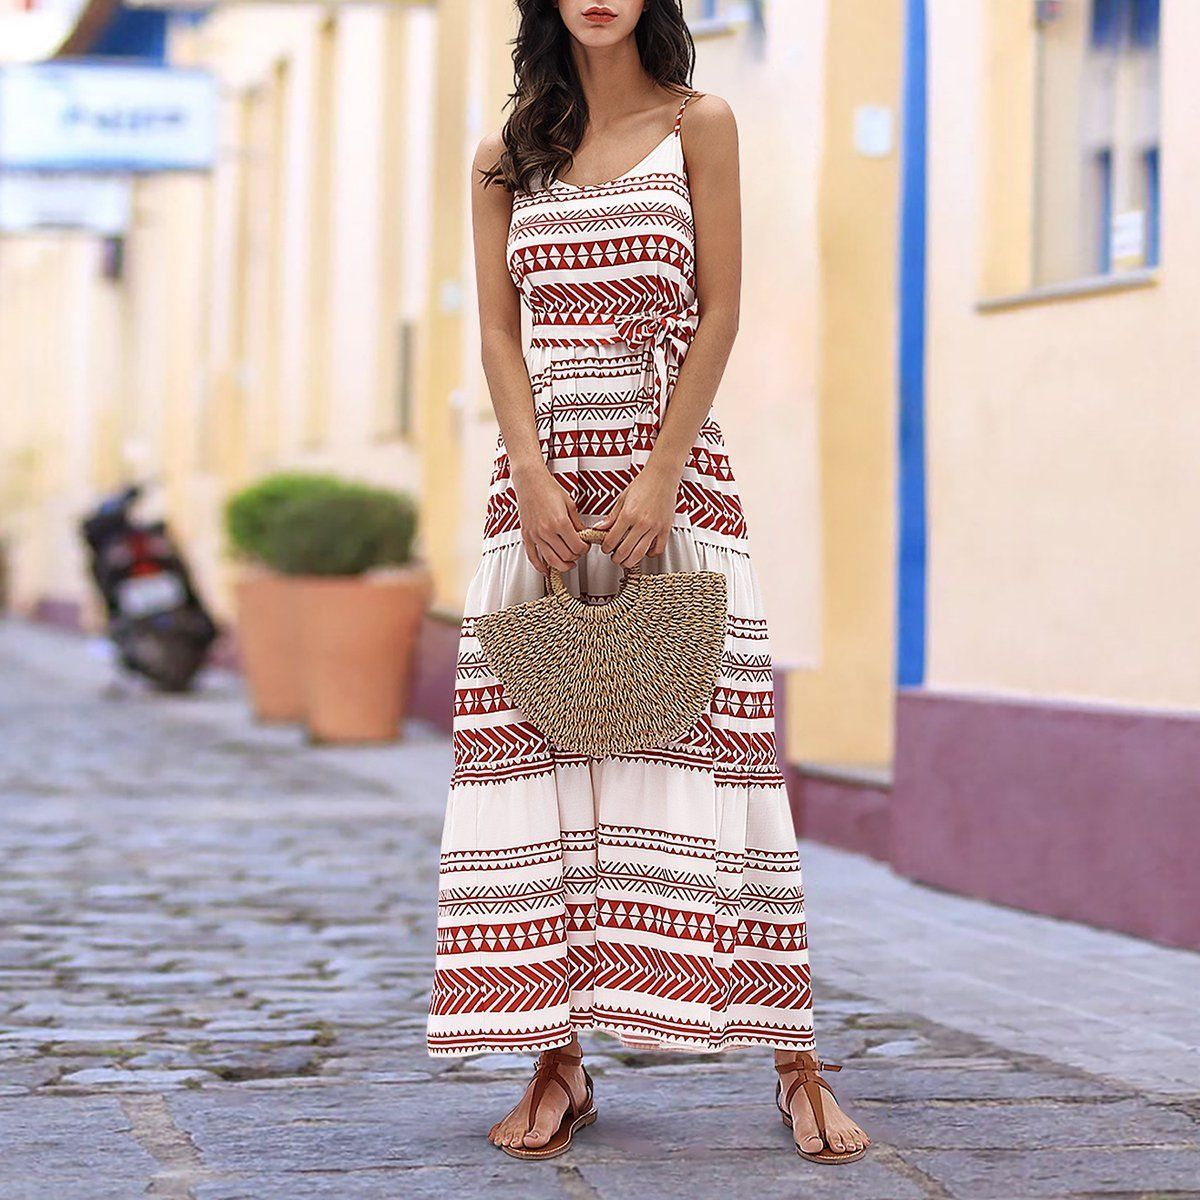 Gorgeous Cotton And Linen Bohemian Floral Printed Vacation Dress Cupstime Vacation Dresses Casual Bohemian Print Dress Vacation Dresses [ 1200 x 1200 Pixel ]